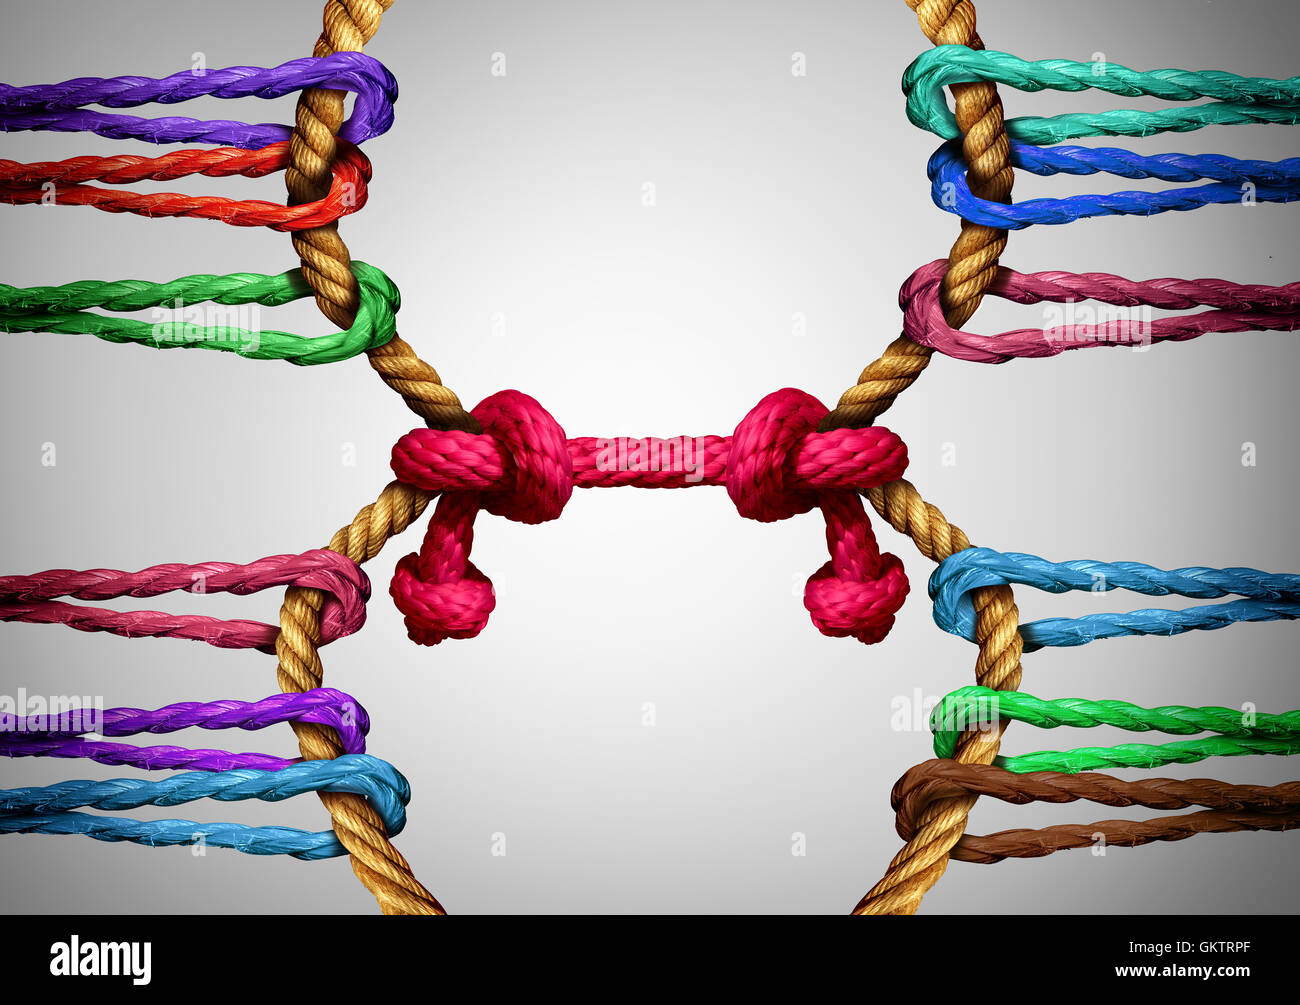 Management consulting and connection symbol as two connected groups of roe linked together by a central link as a business and social communication metaphor for bringing teams together through strong leadership. Stock Photo